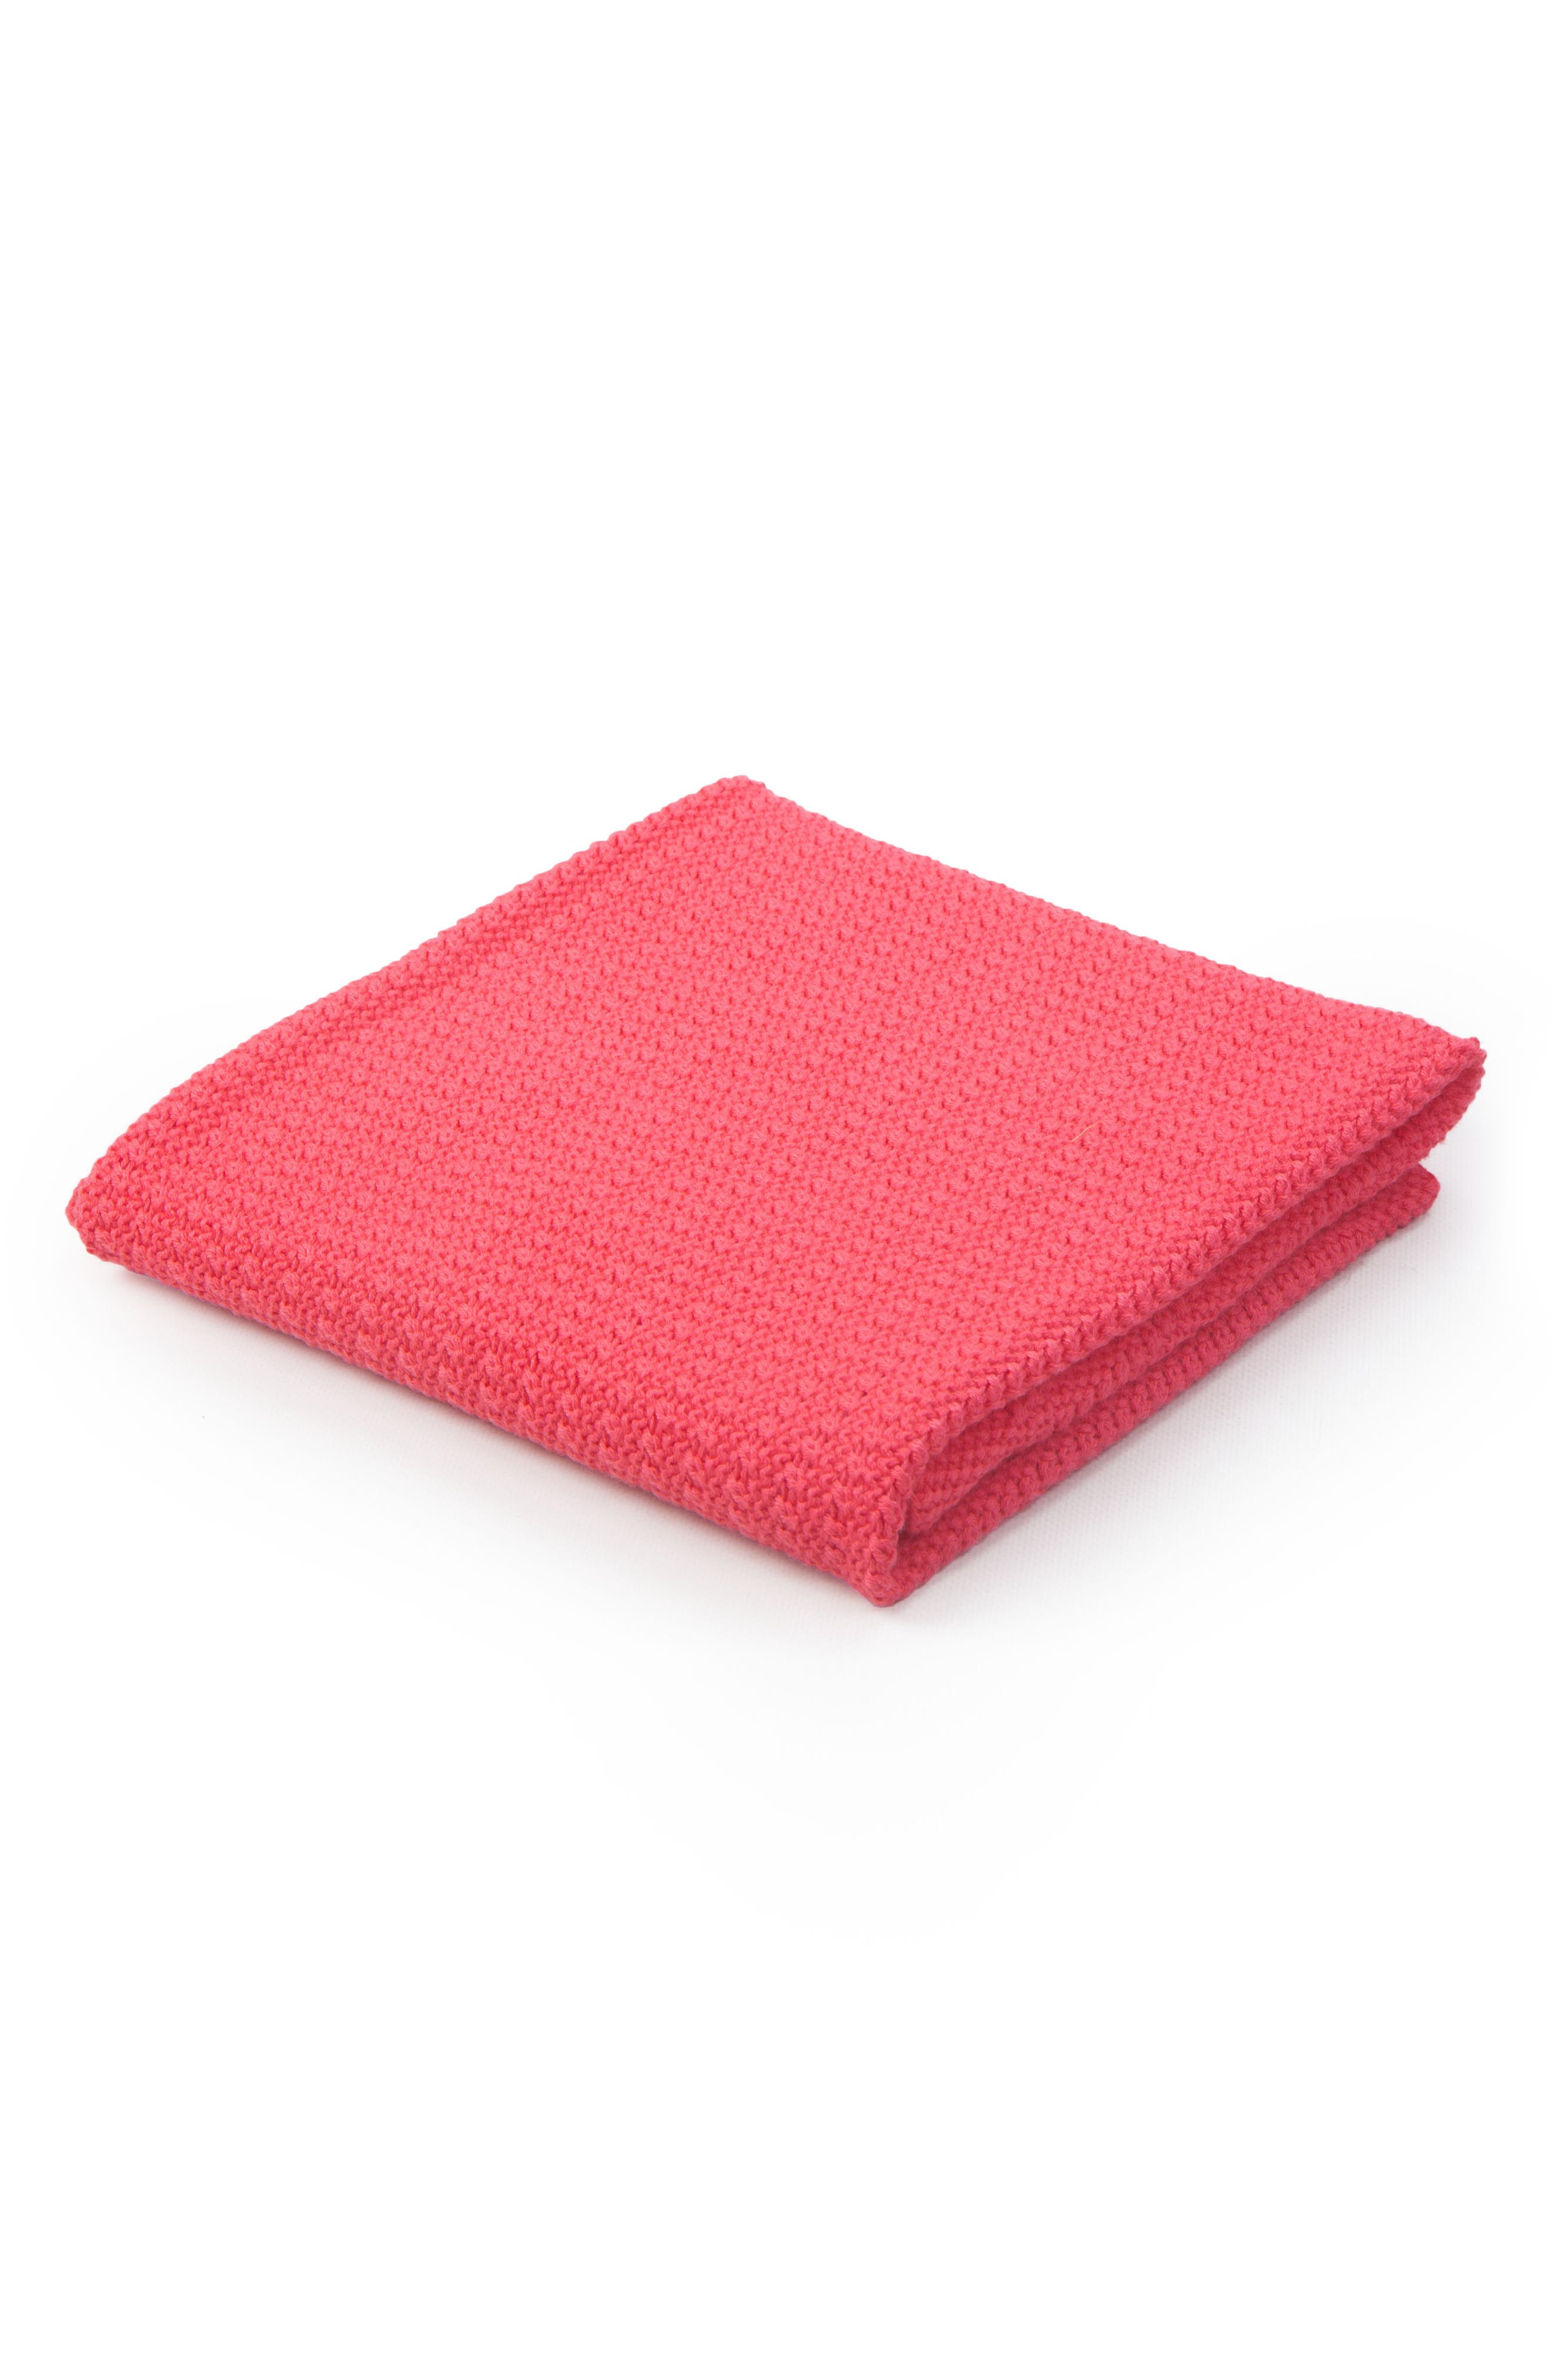 Cellular Cotton Baby Blanket,                             Main thumbnail 3, color,